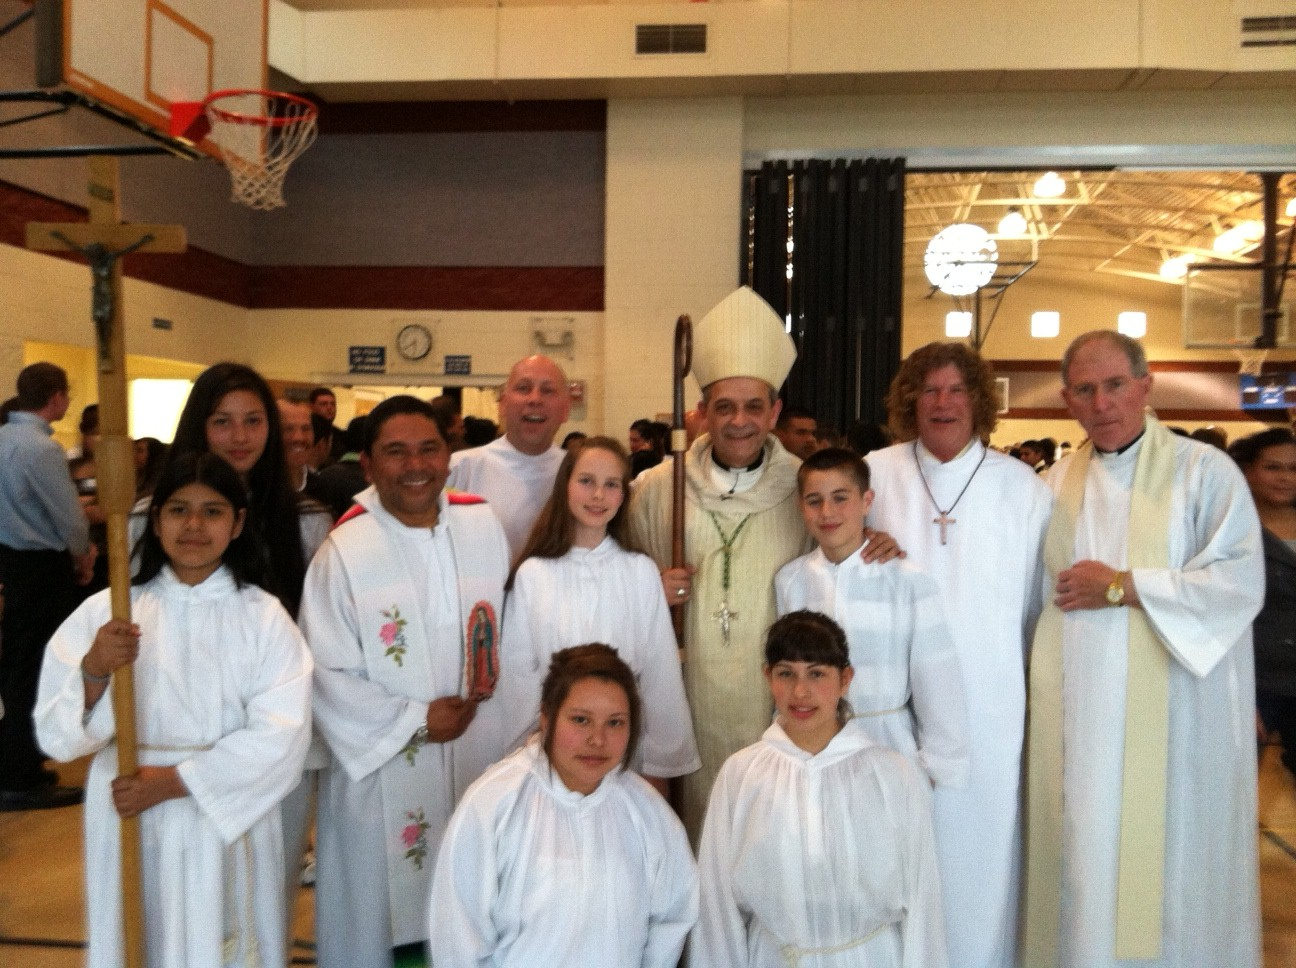 saint charles catholic singles Mission statement: under the guidance of the holy spirit, we, the family of st john neumann, strive to become committed disciples of jesus, growing as stewards of god's gifts.